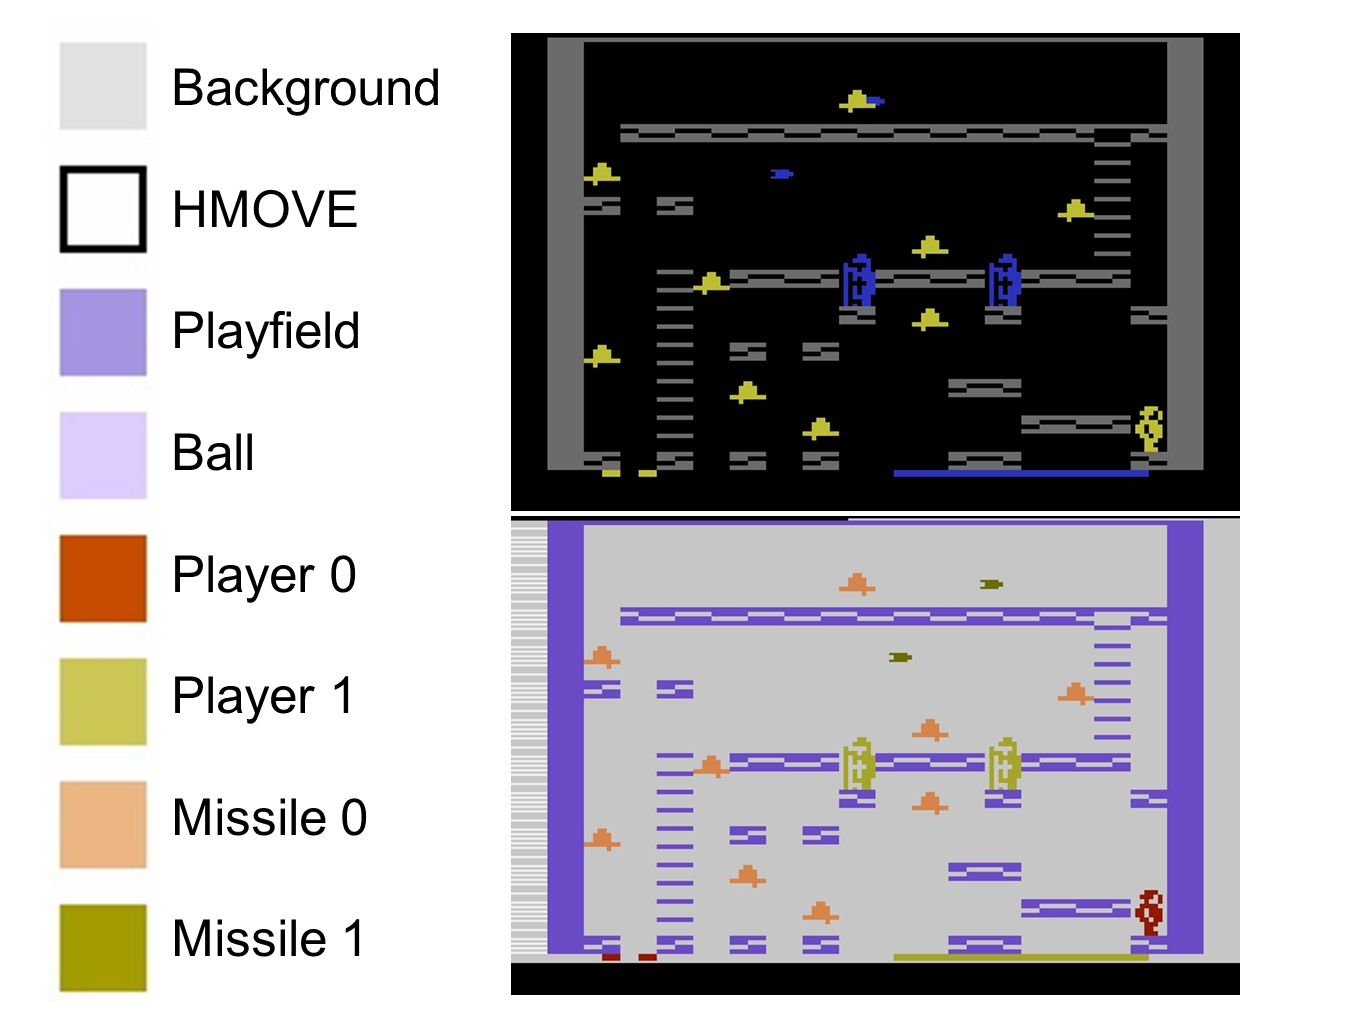 Background HMOVE Playfield Ball Player 0 Player 1 Missile 0 Missile 1